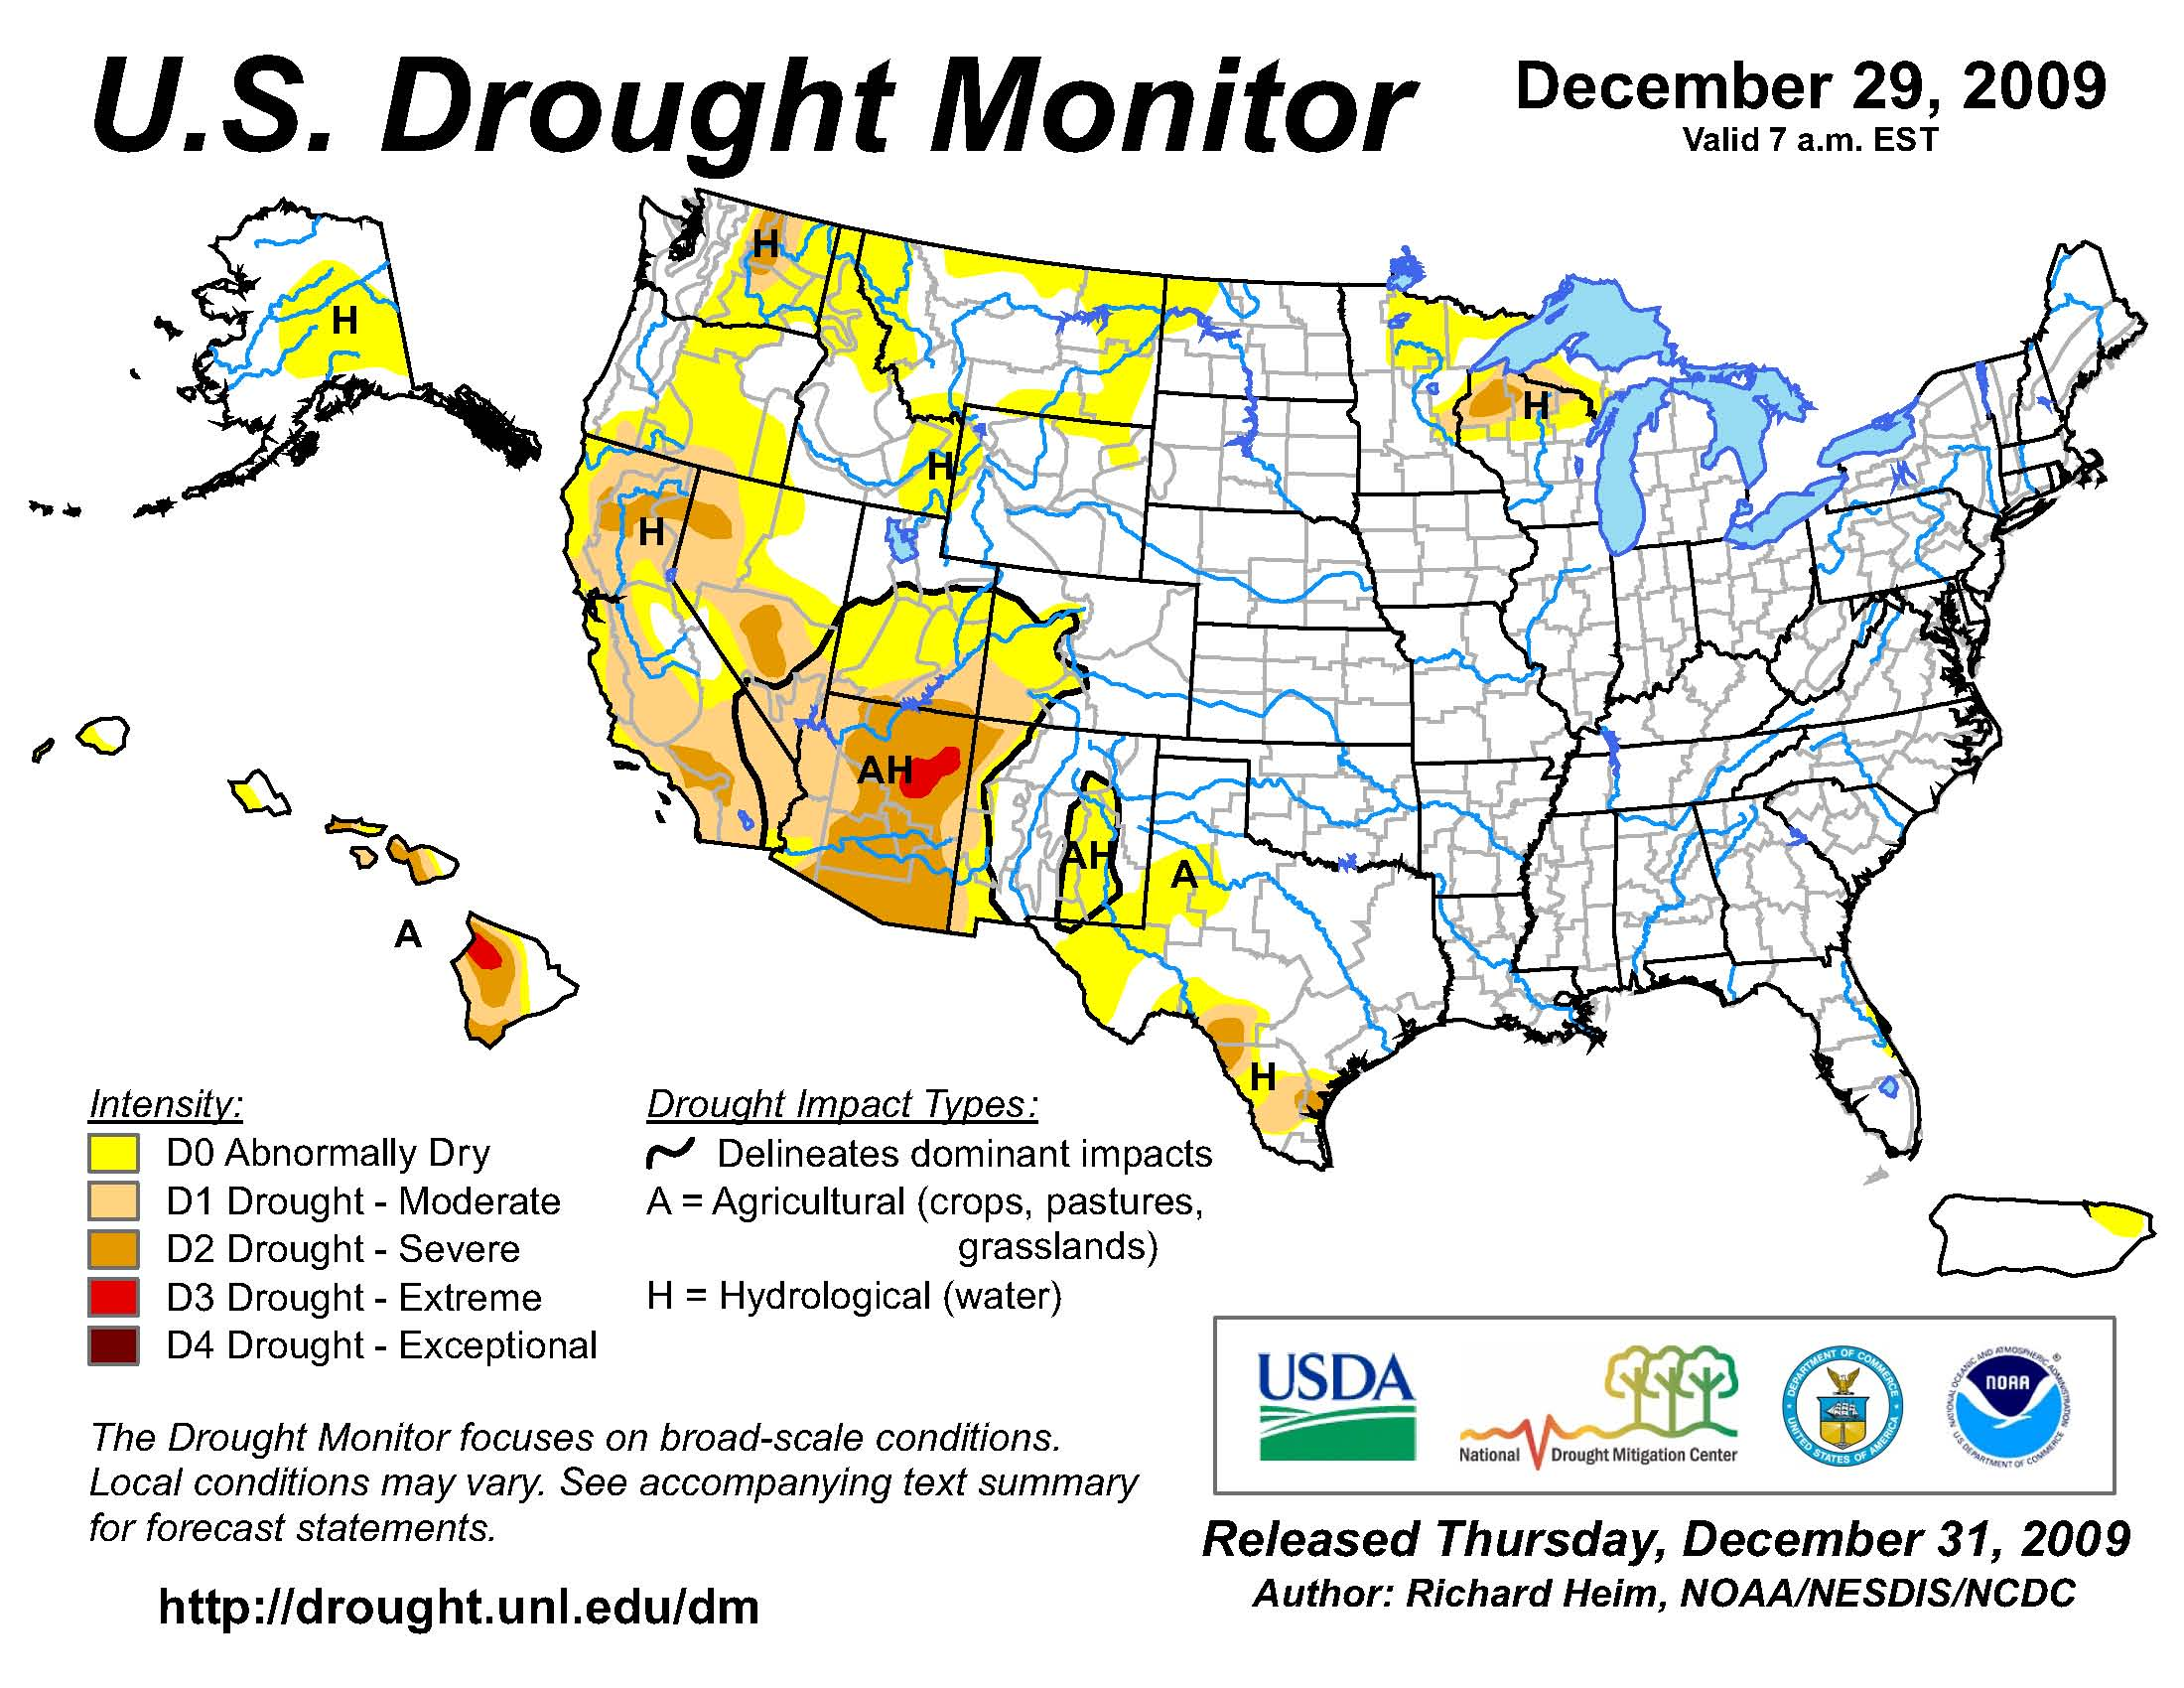 U.S. Drought Monitor map from 29 December 2009